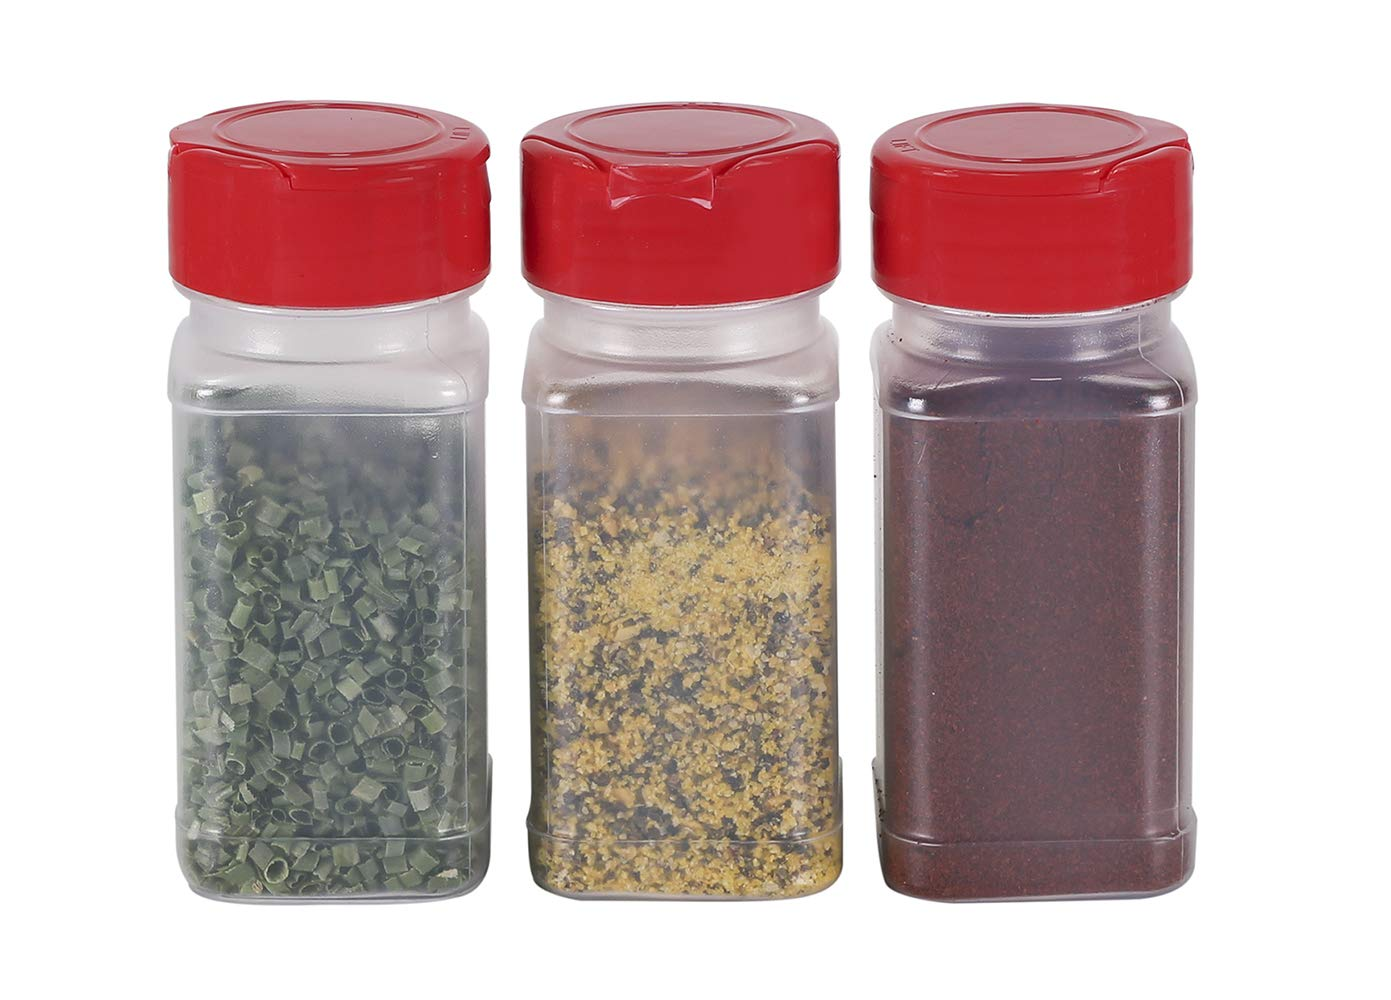 Confectionary Toppings Heavy-Duty Plastic Spice Jars w//Sifter Lids Pinnacle Mercantile Square 4oz Seasonings Empty 12-Pack Clear Reusable Containers for Herbs